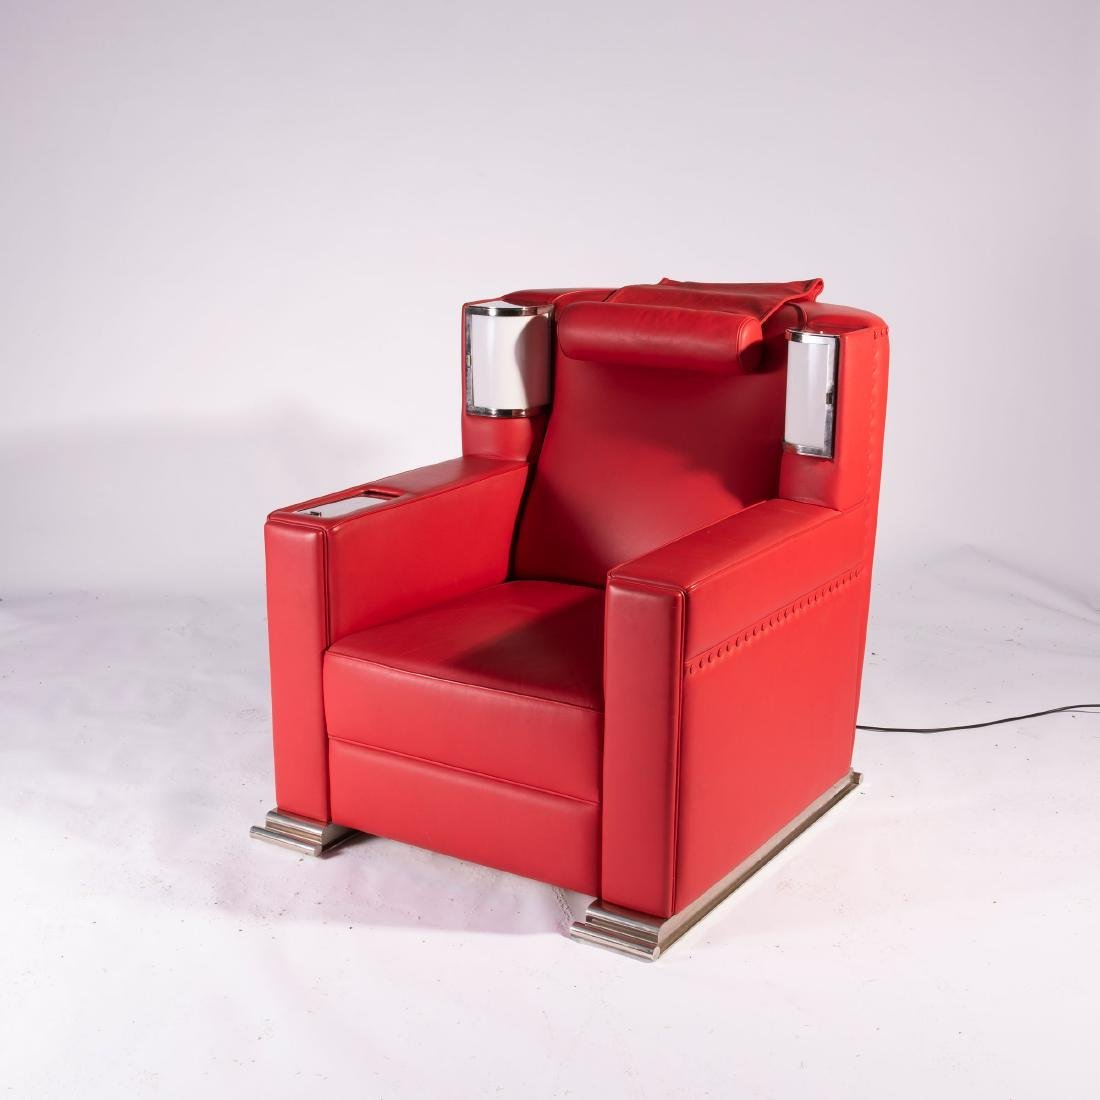 'Red comfortable chair', 1931 - 6